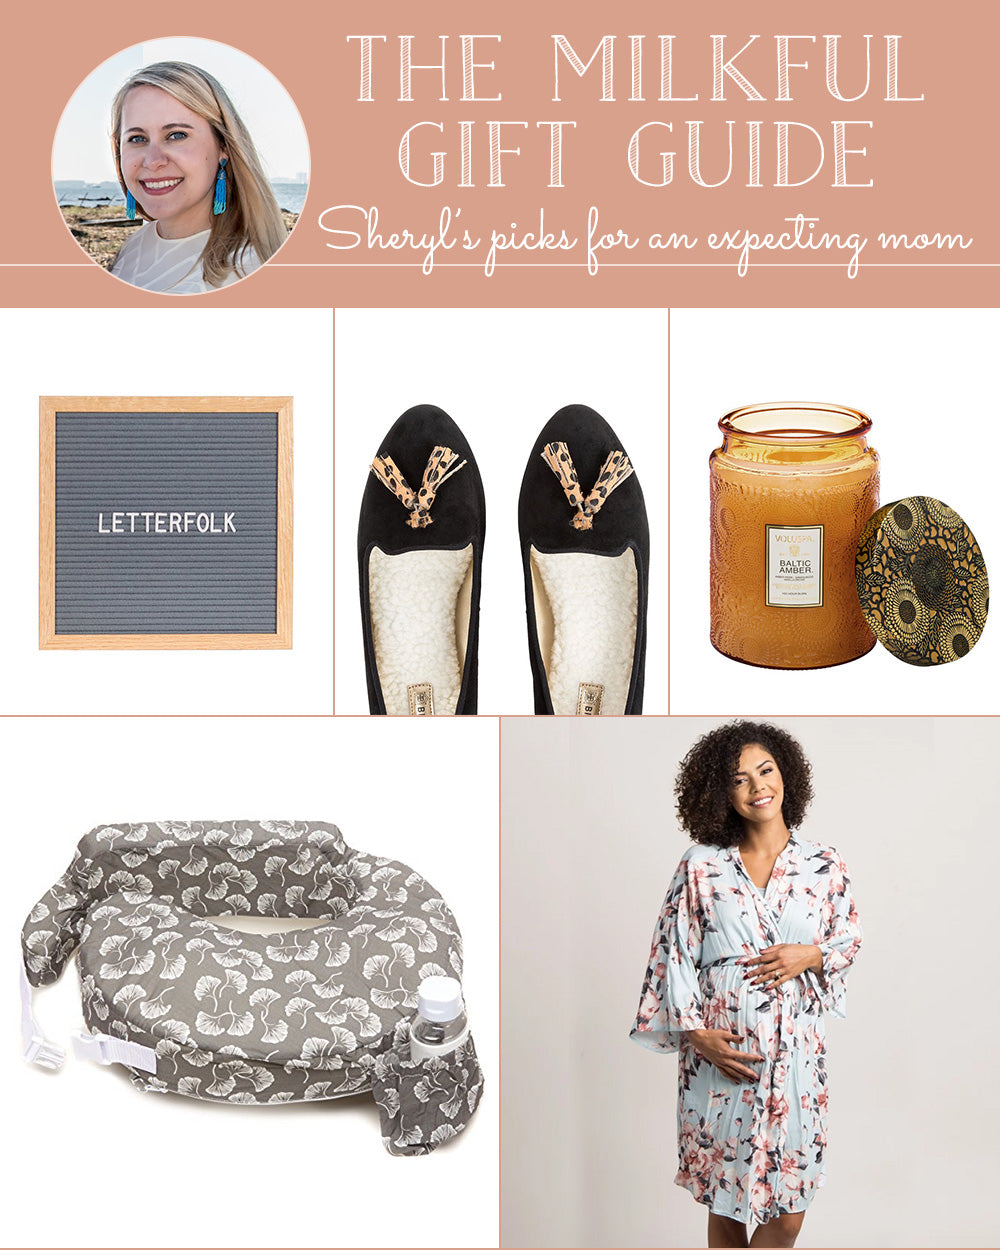 The Milkful Gift Guide for Expecting Moms